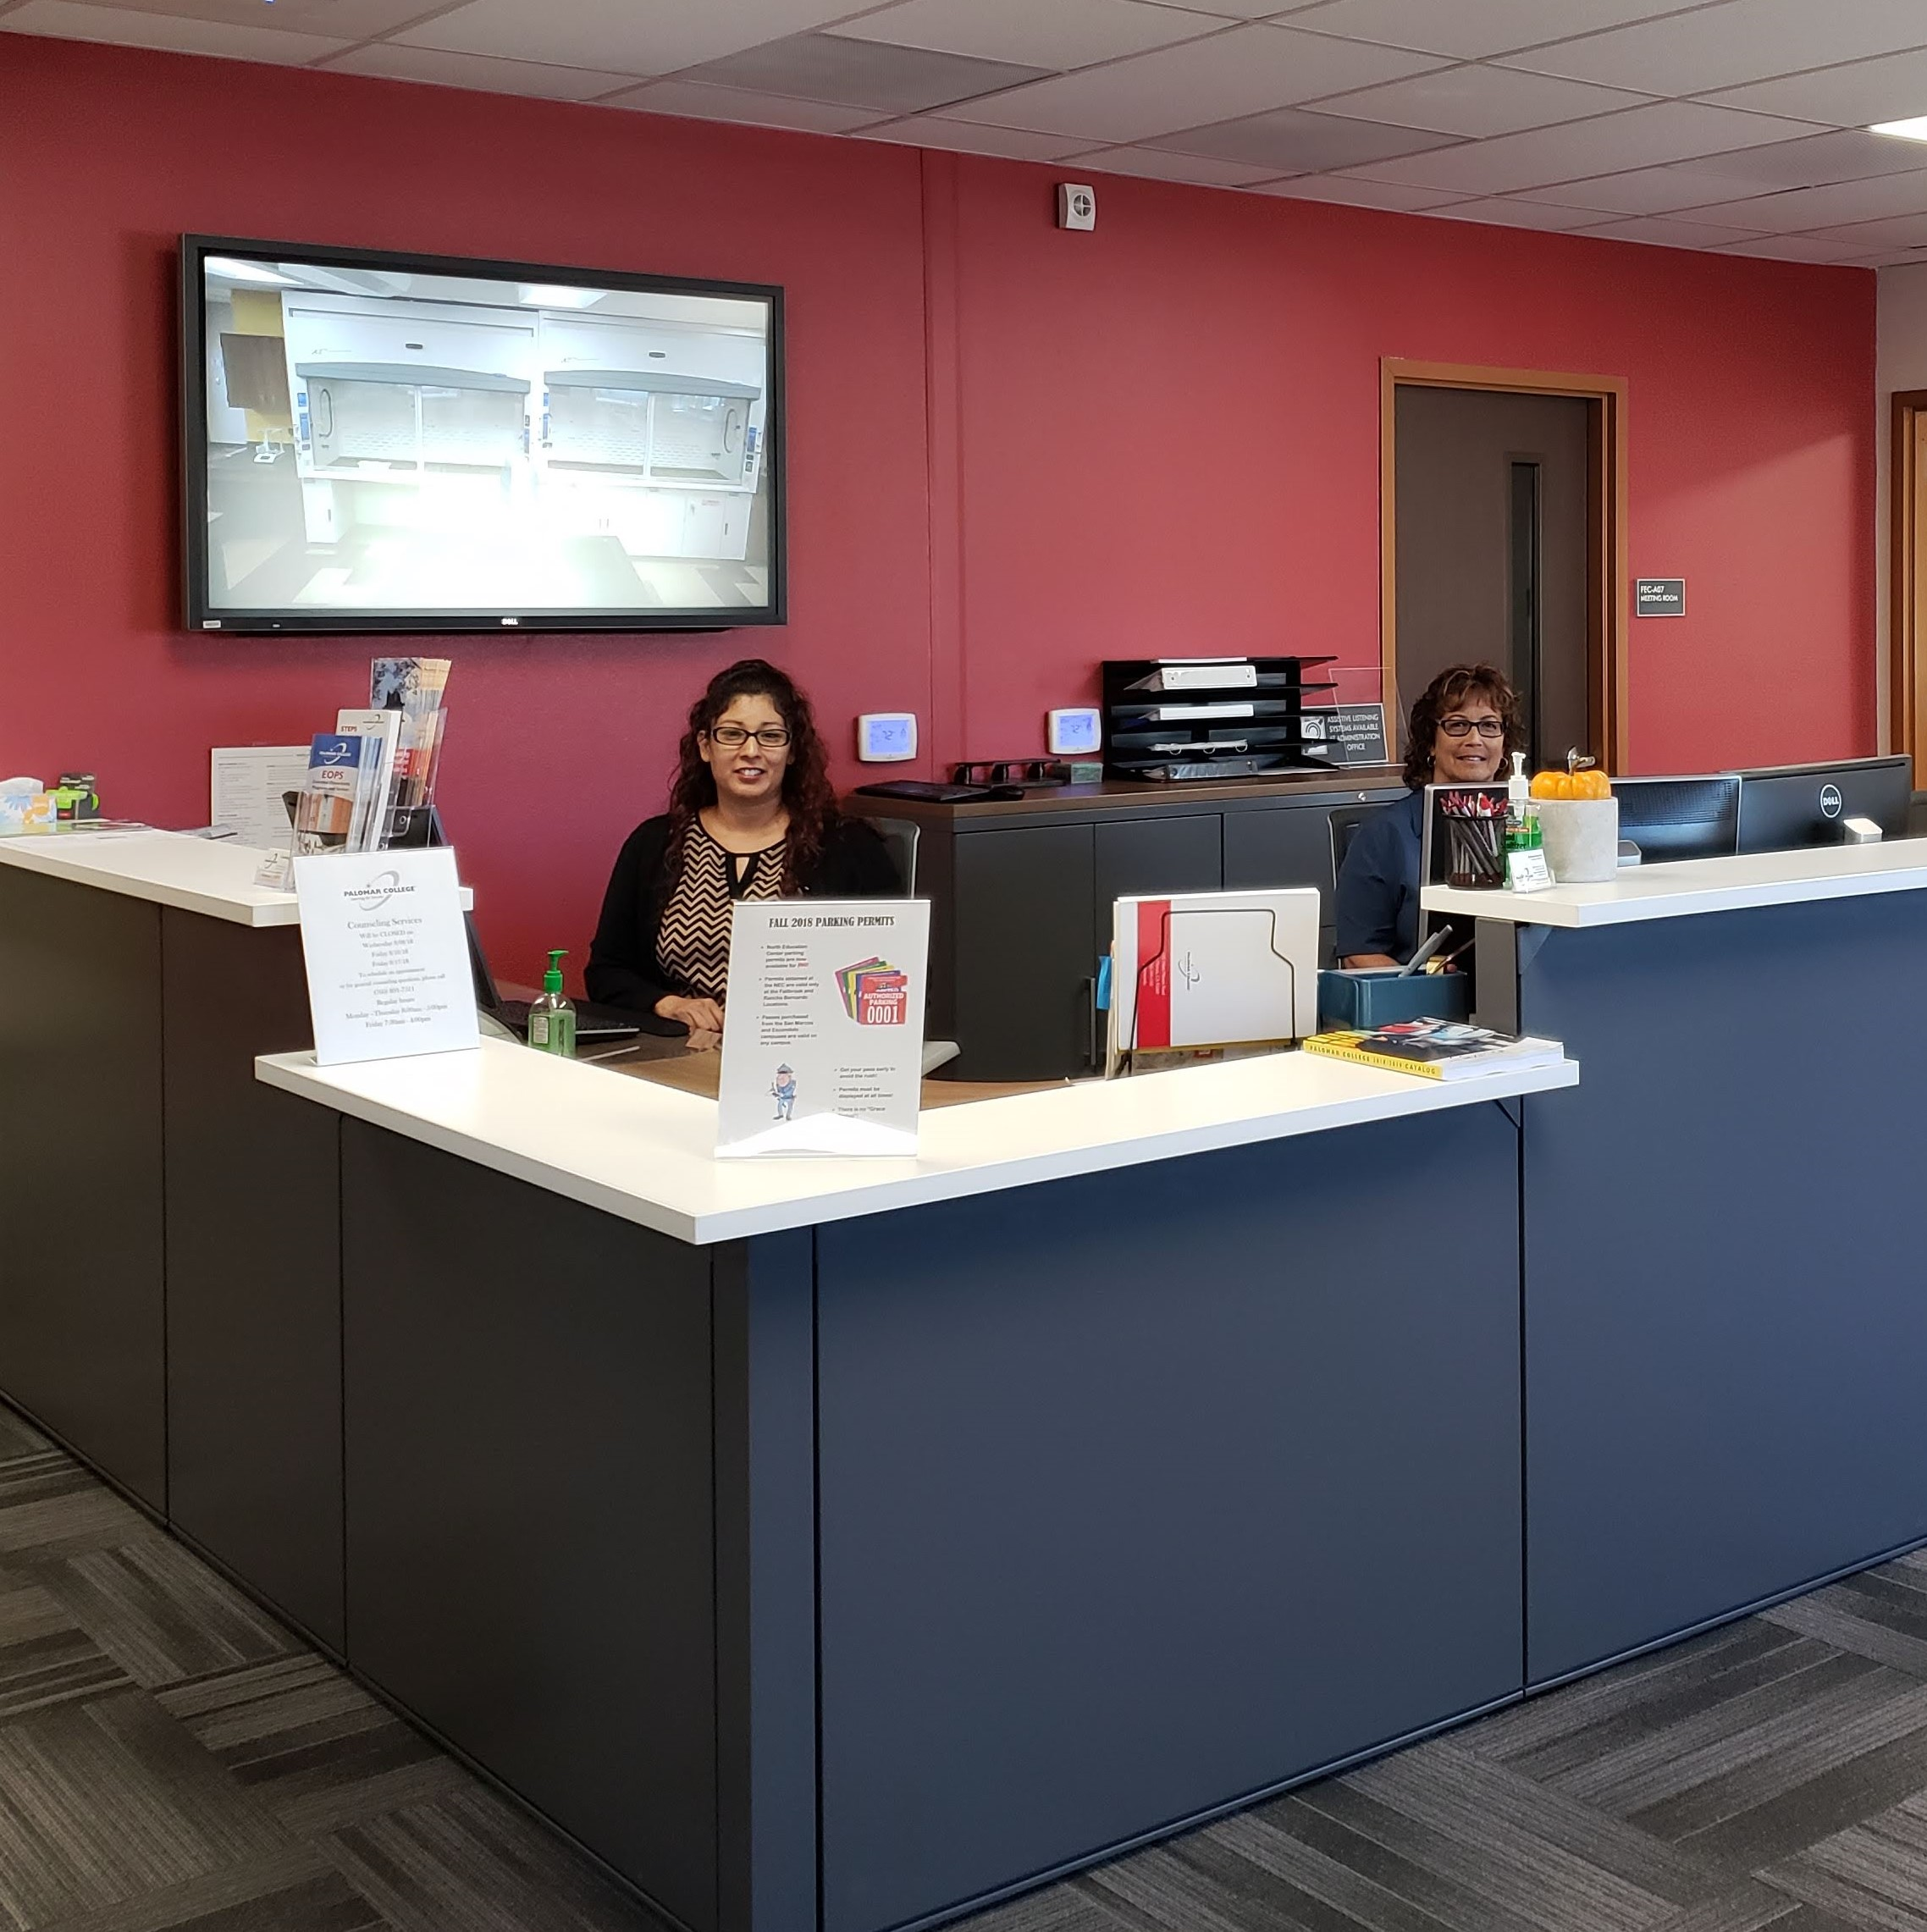 Welcome to Enrollment Services where you can get assistance with Admissions, Financial Aid, and Counseling services!